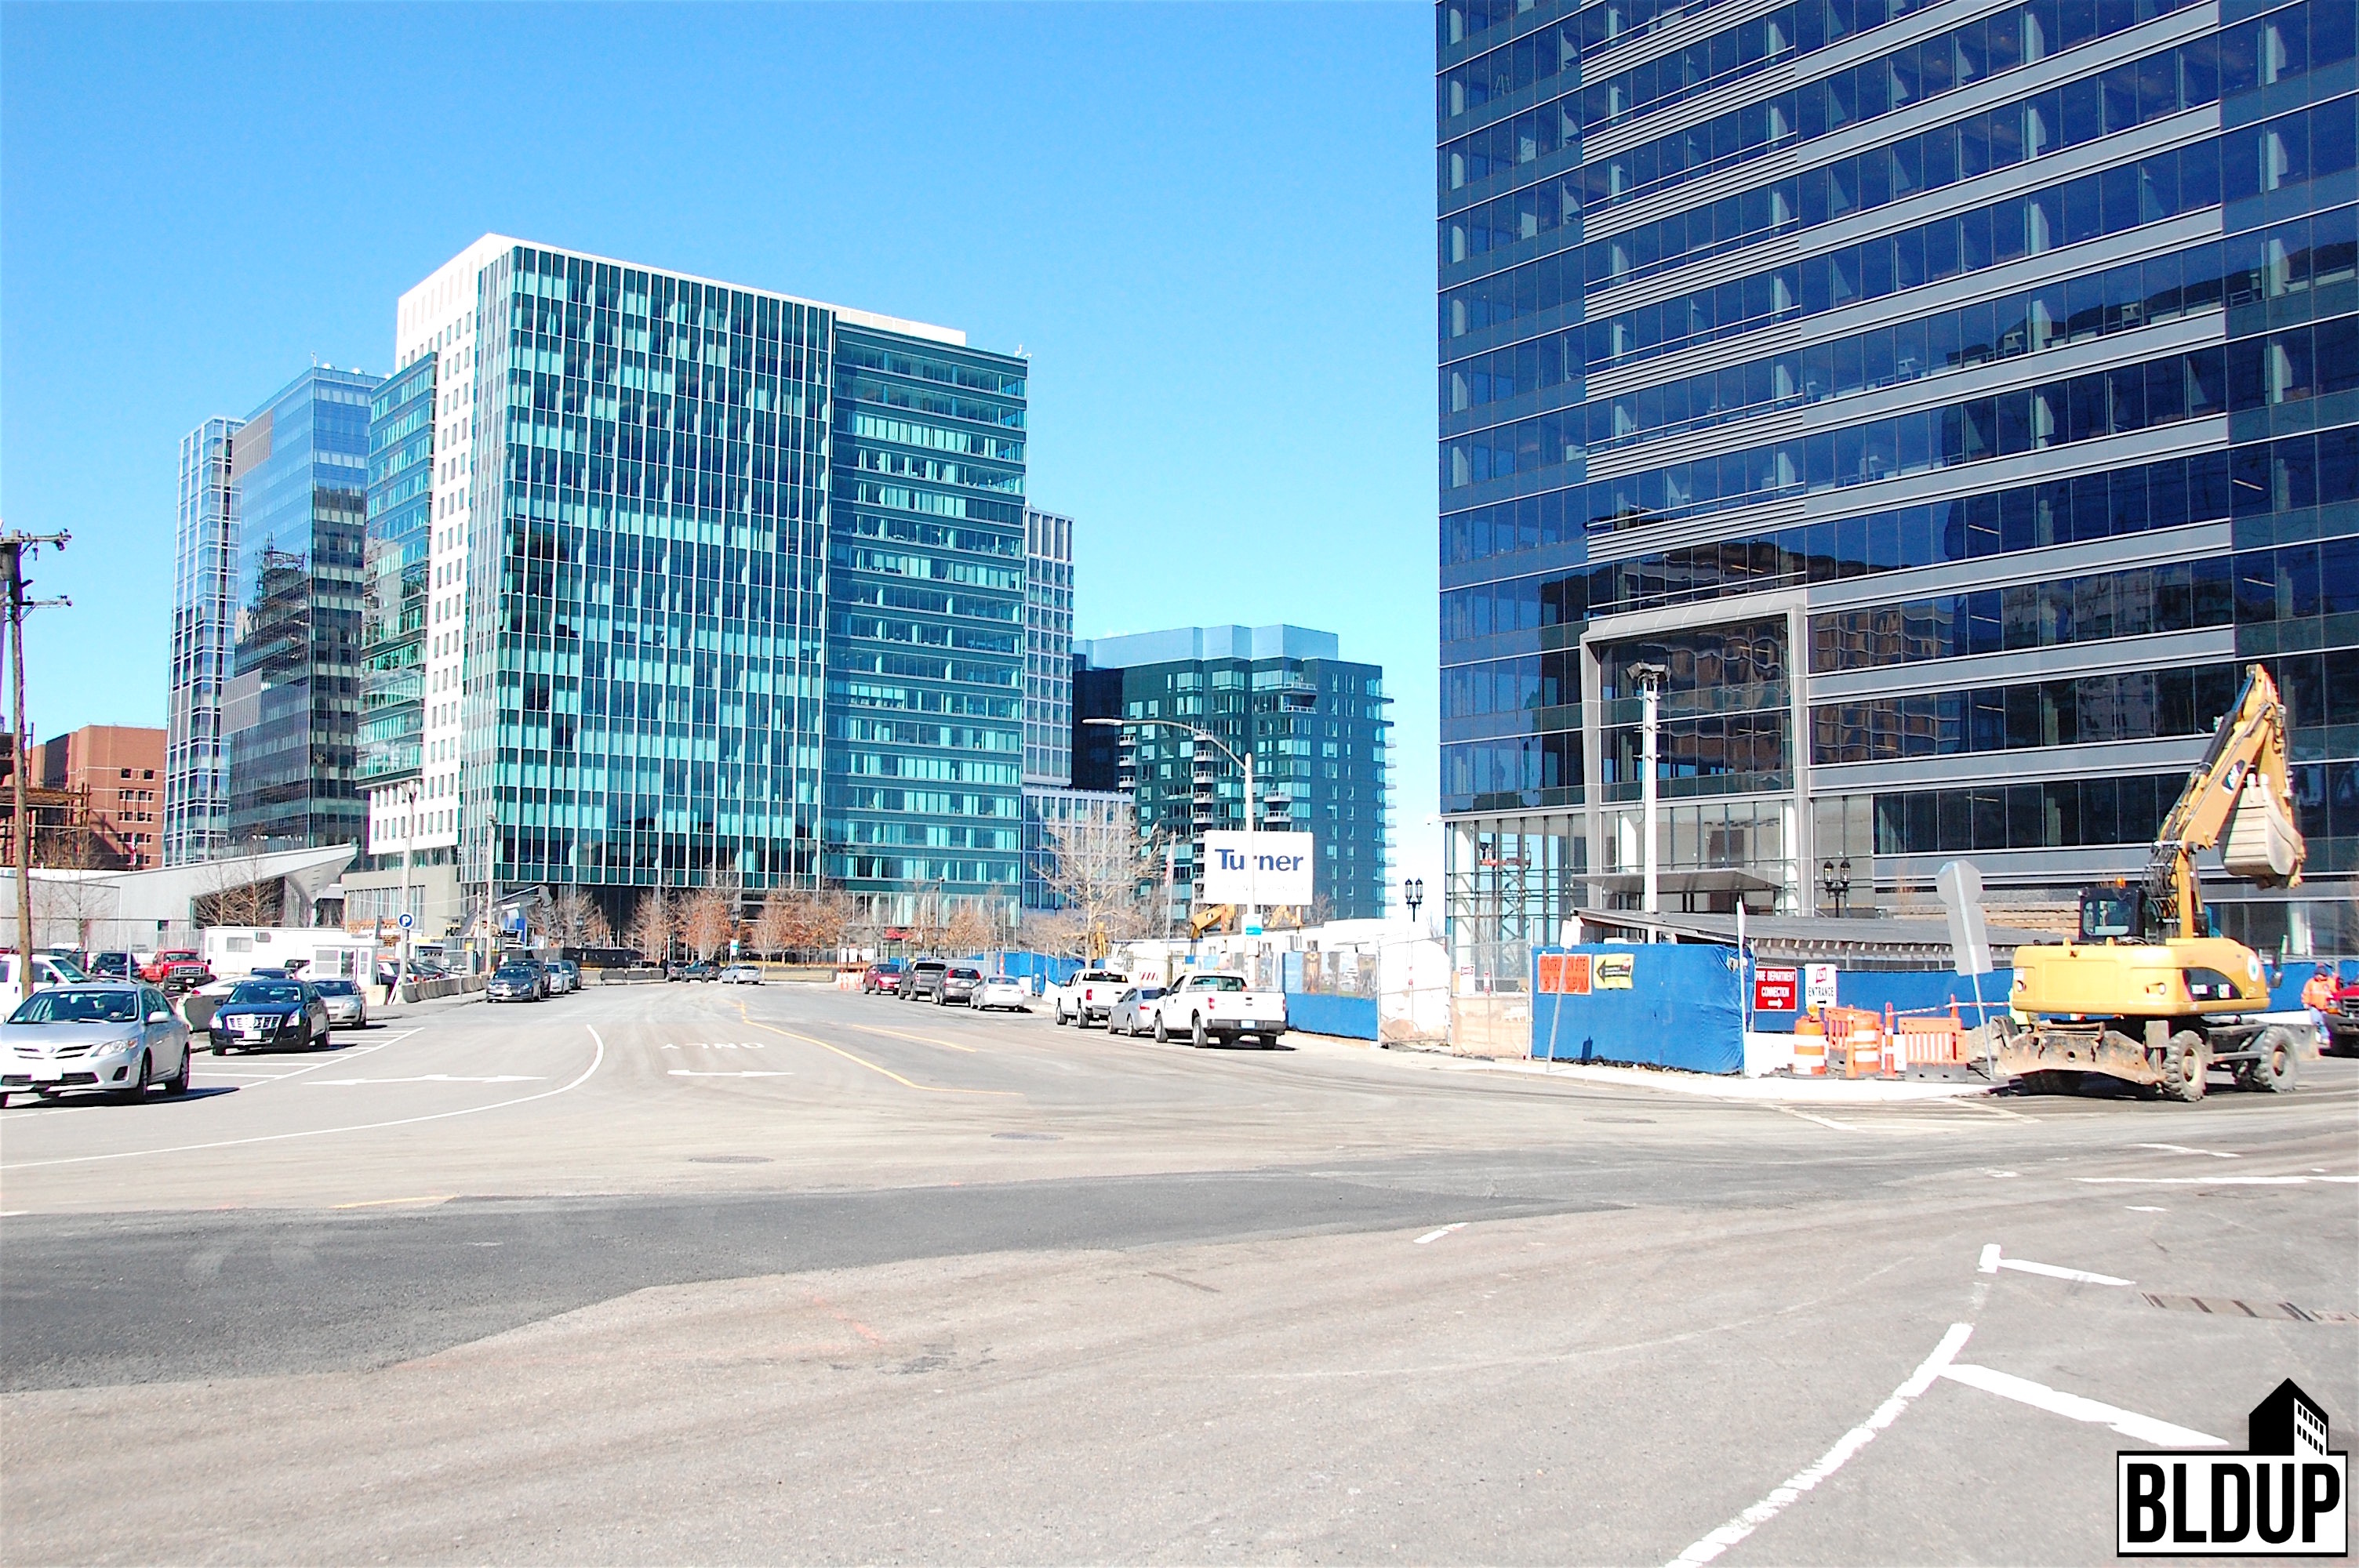 Northern avenue straightening project public works street a a will corporation seaport district south boston waterfront 2